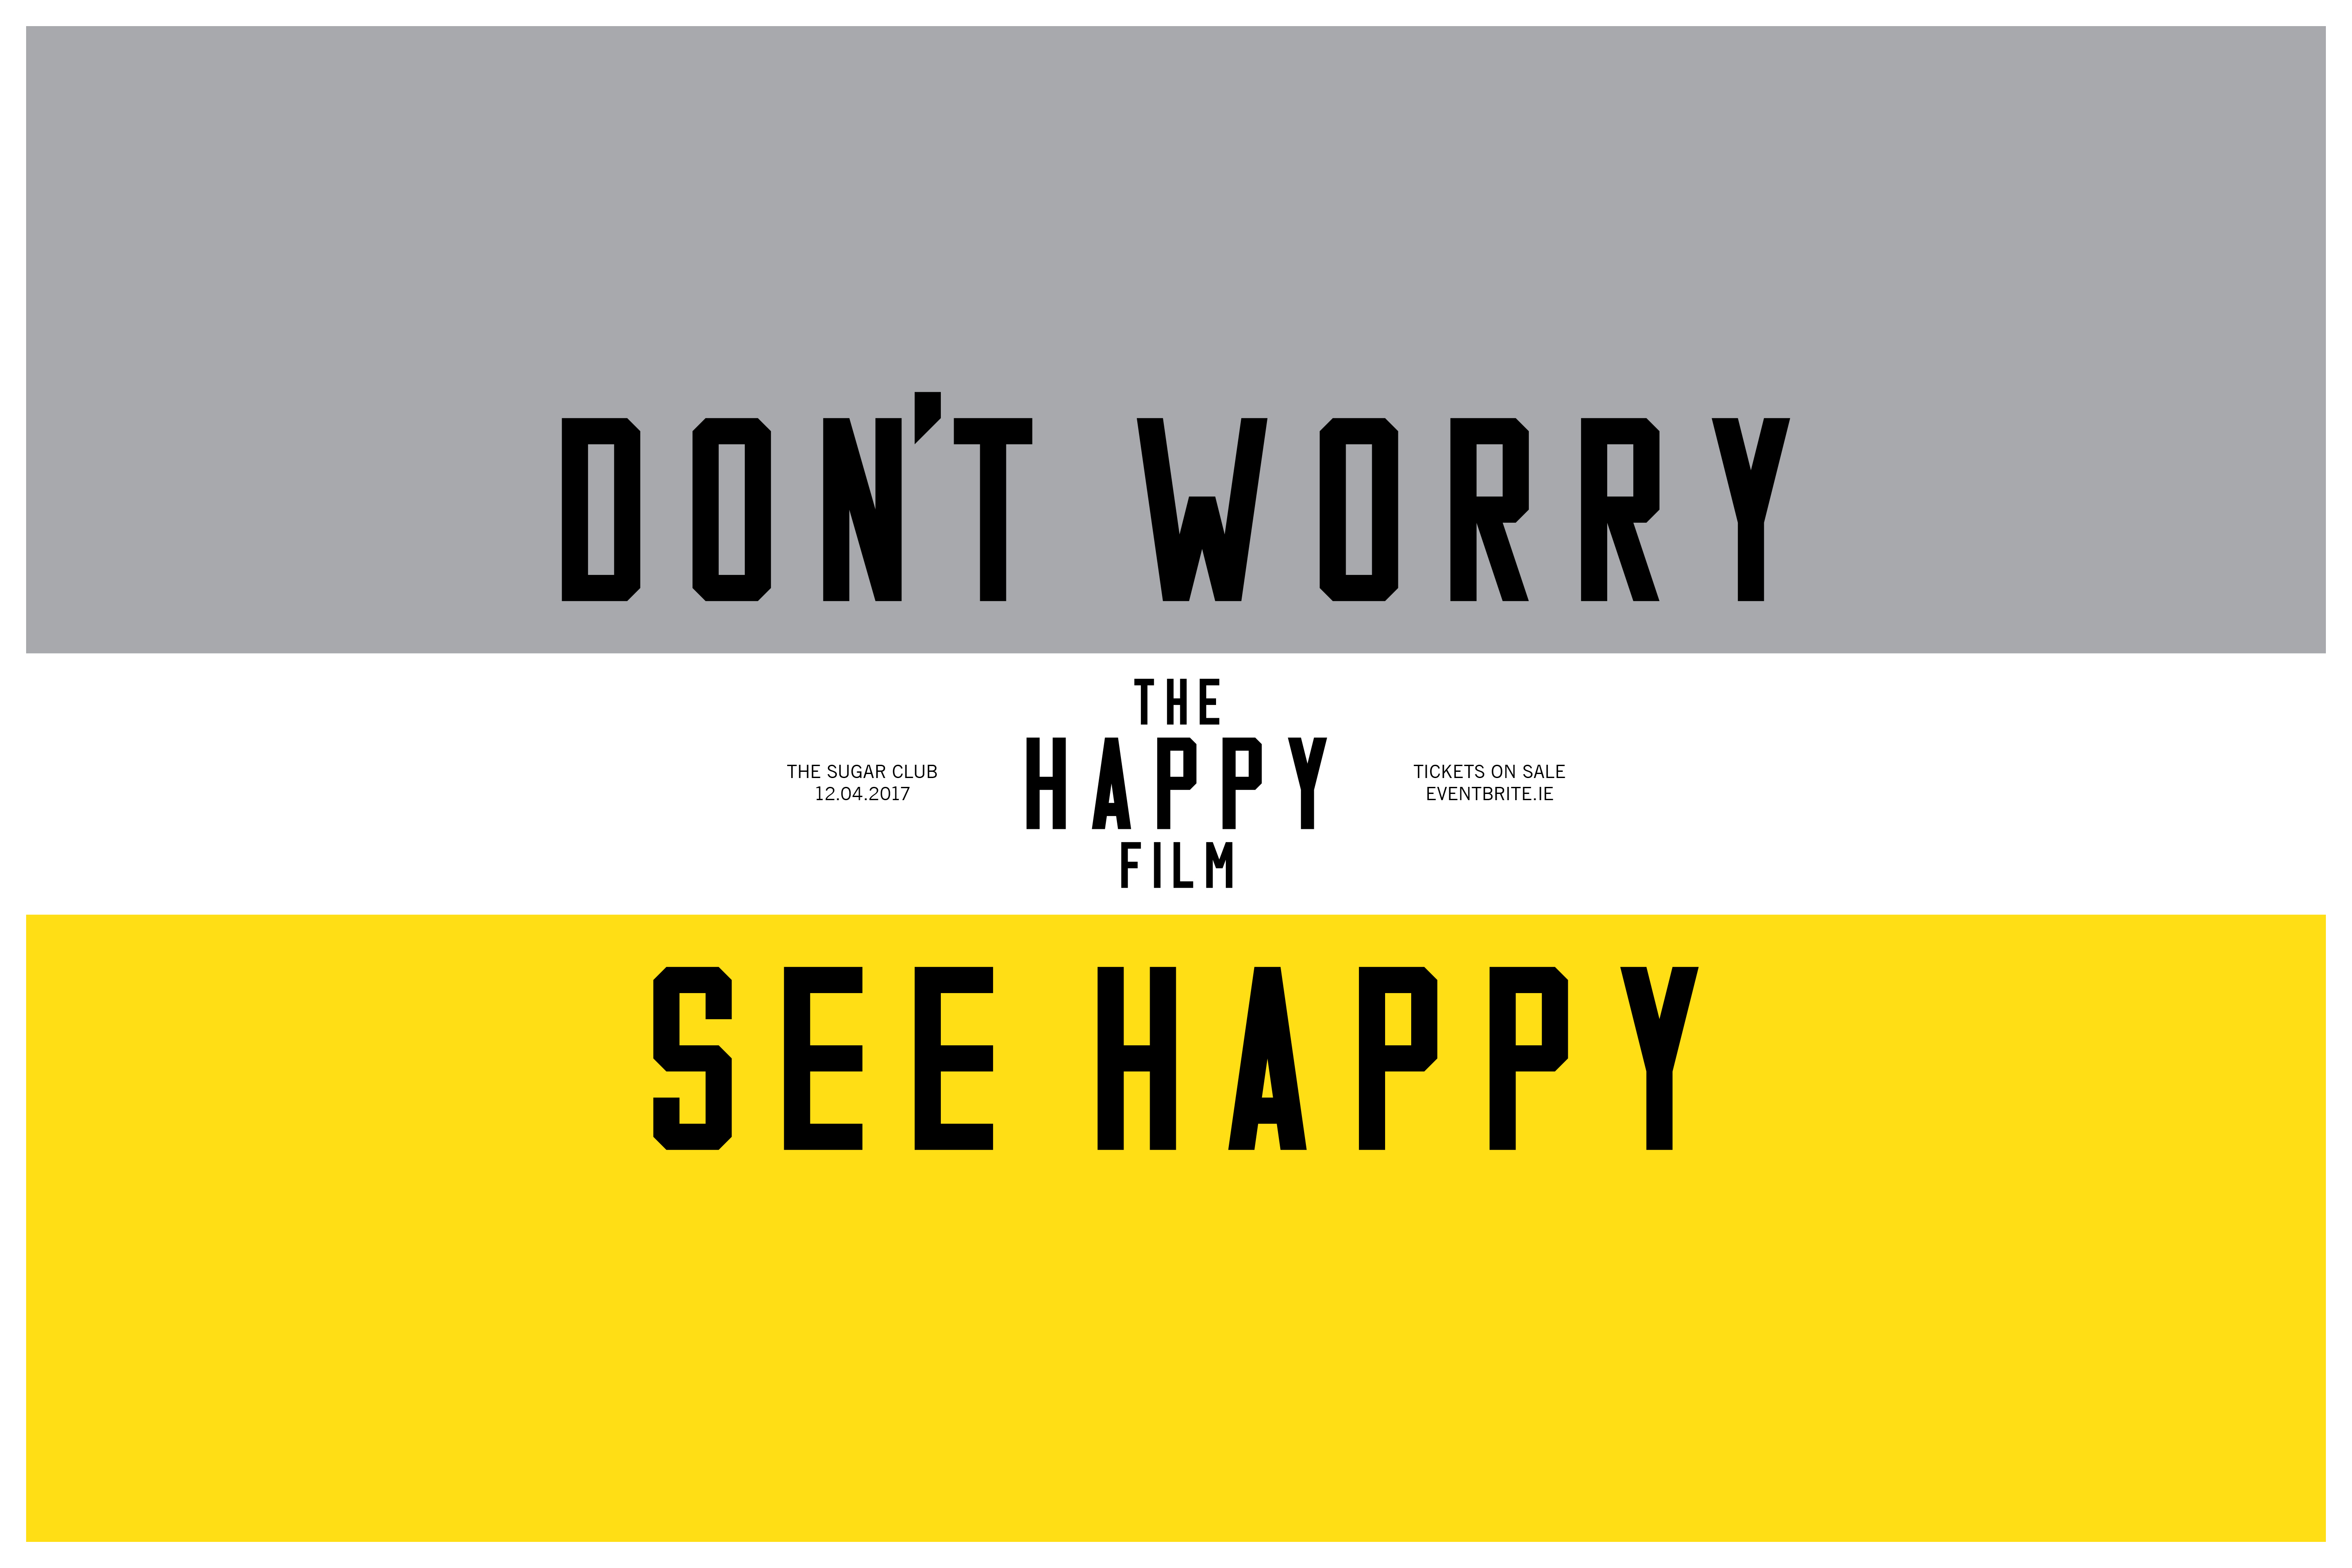 Cover image: Socialise: The Happy Film